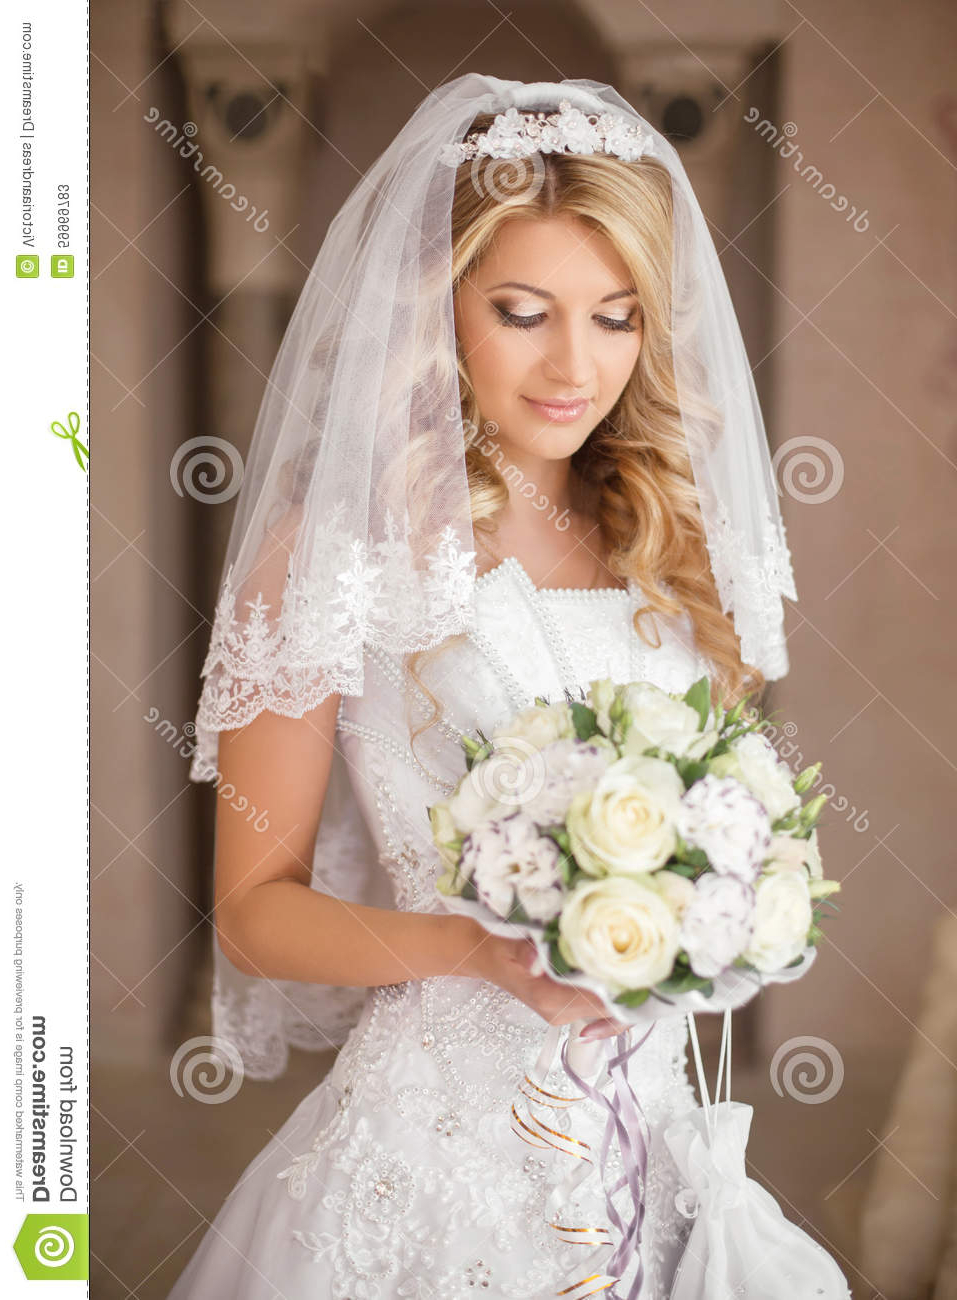 Most Up To Date Tender Bridal Hairstyles With A Veil Throughout Beautiful Bride Woman With Bouquet Of Flowers, Wedding Makeup An (View 12 of 20)